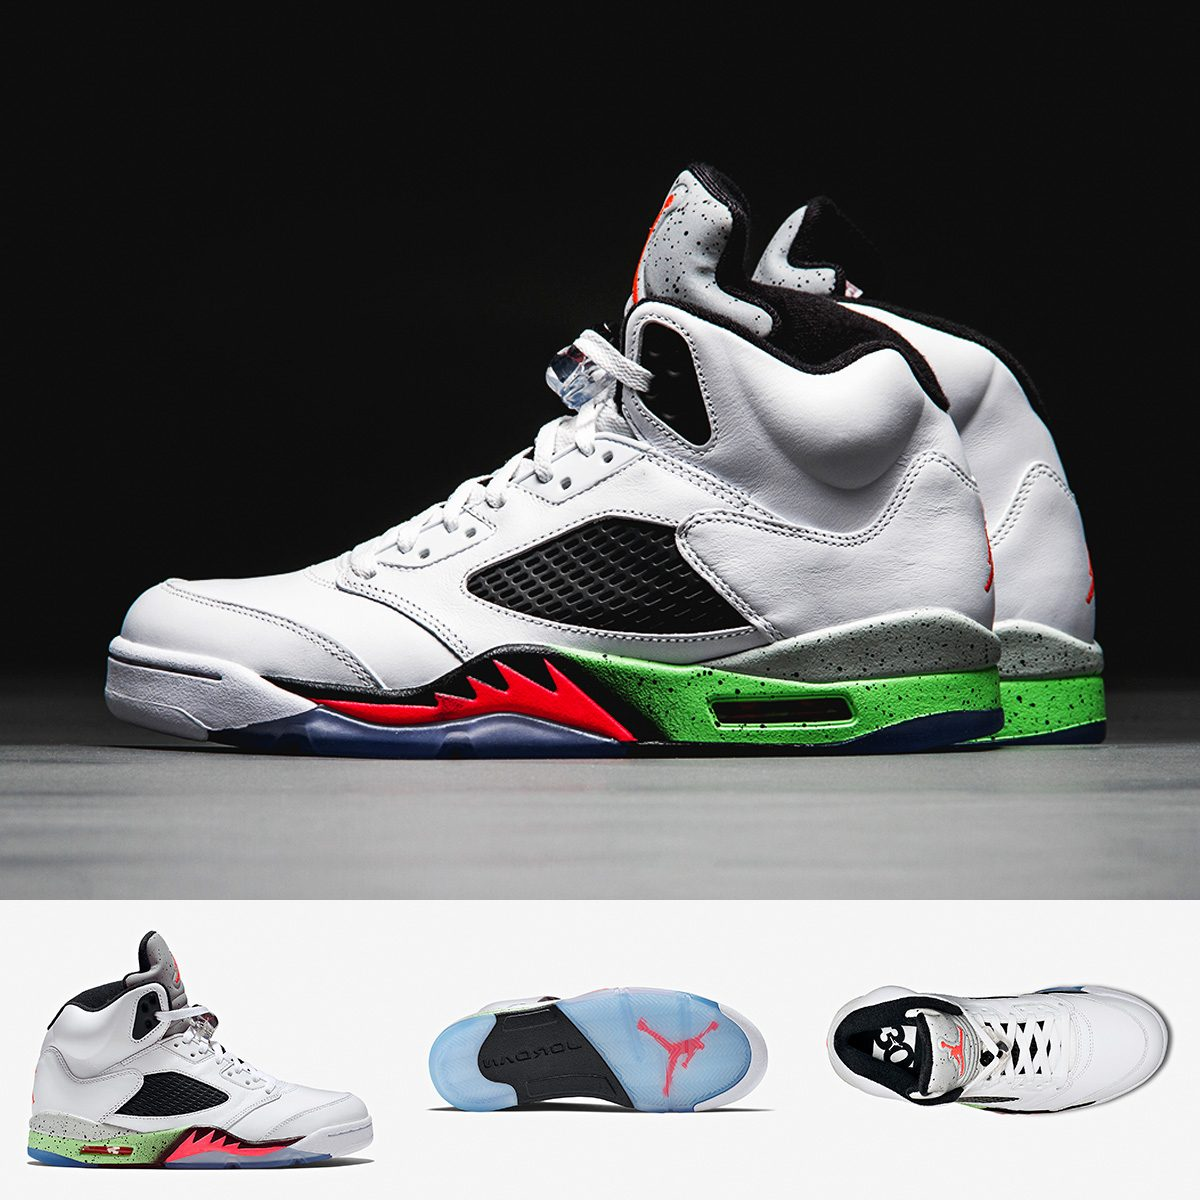 best service b9085 180aa ... official zapatillas nike air jordan 5 retro blanco poison original.  cargando zoom. 193c1 26d41